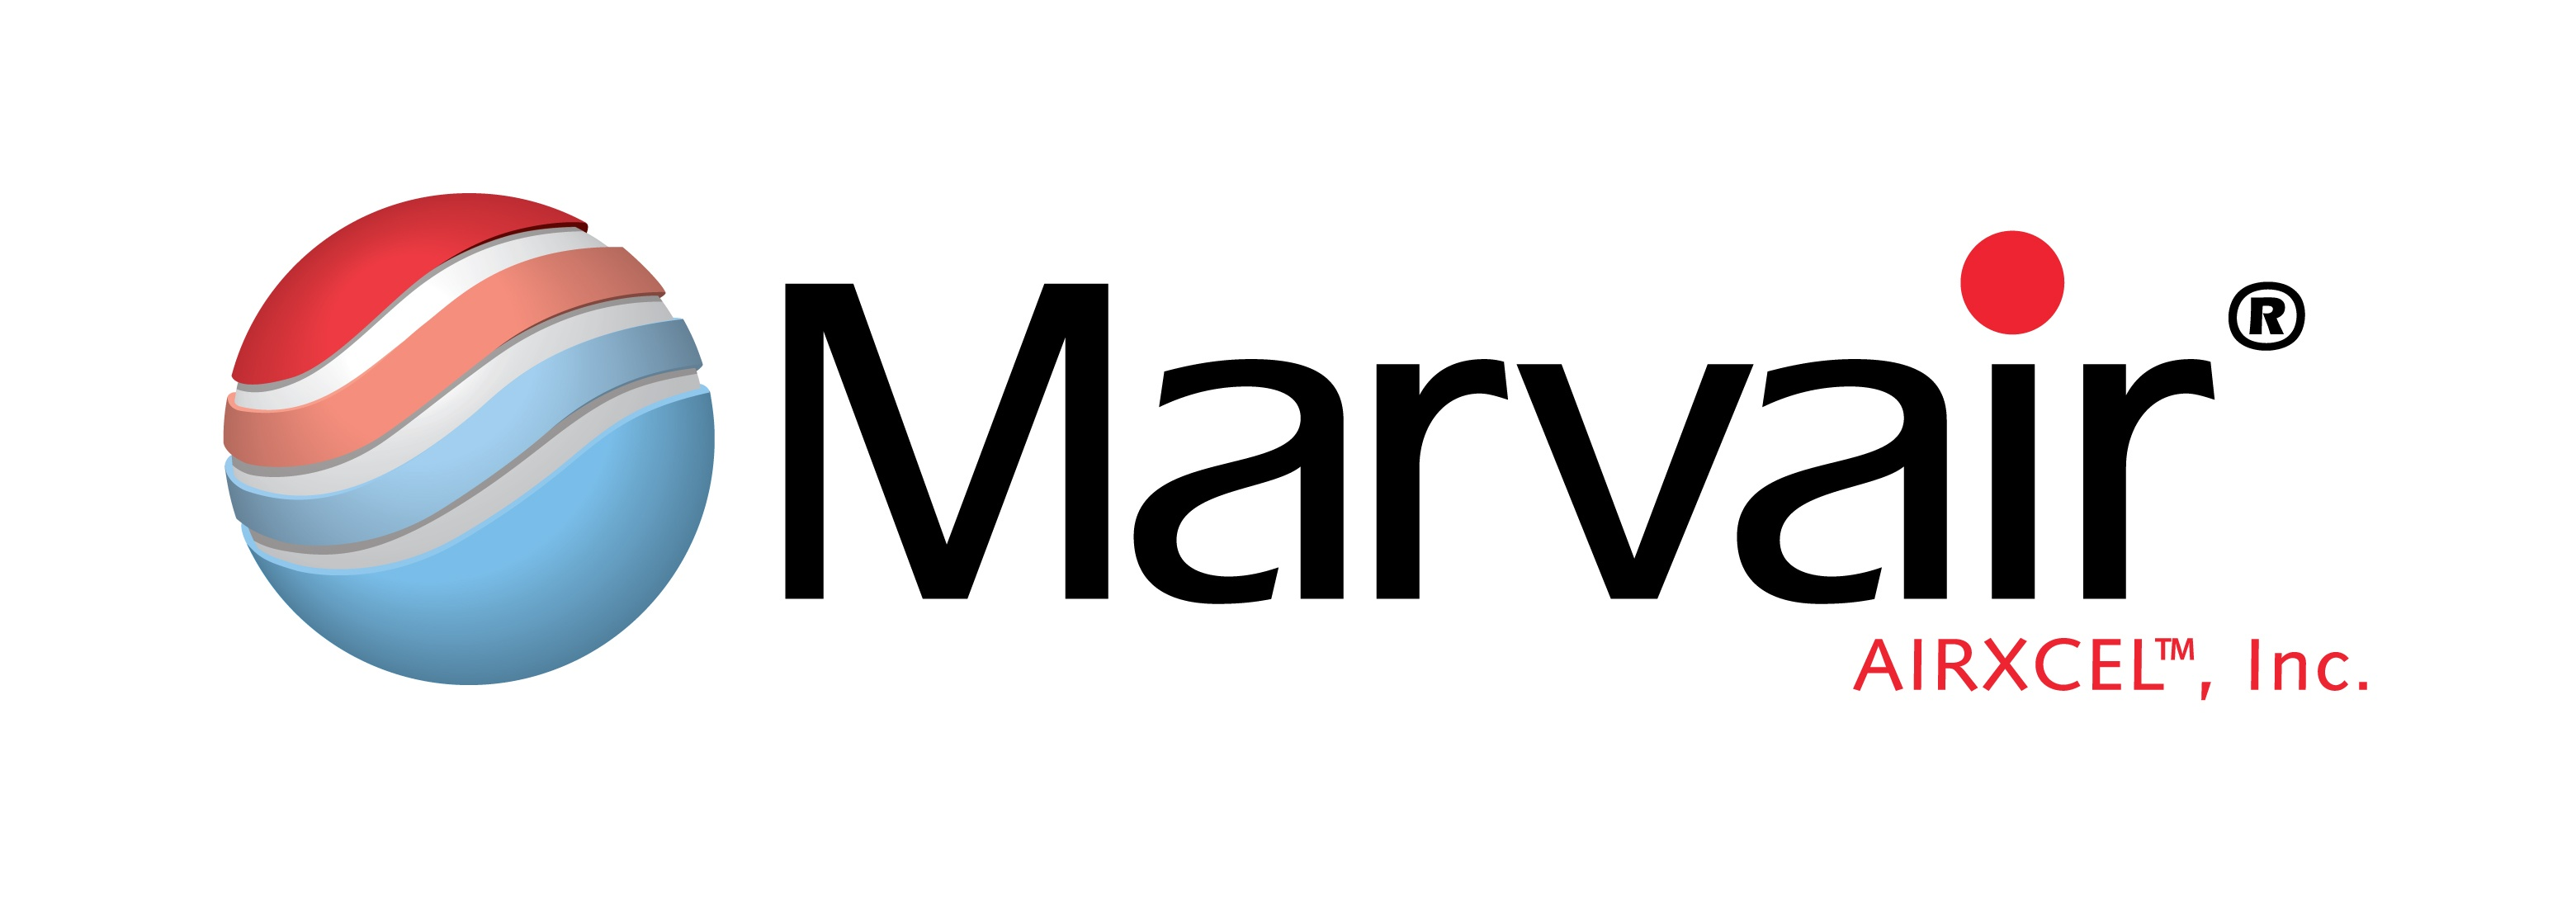 Marvair_Logo_3D_Powerball_No_Border.jpg